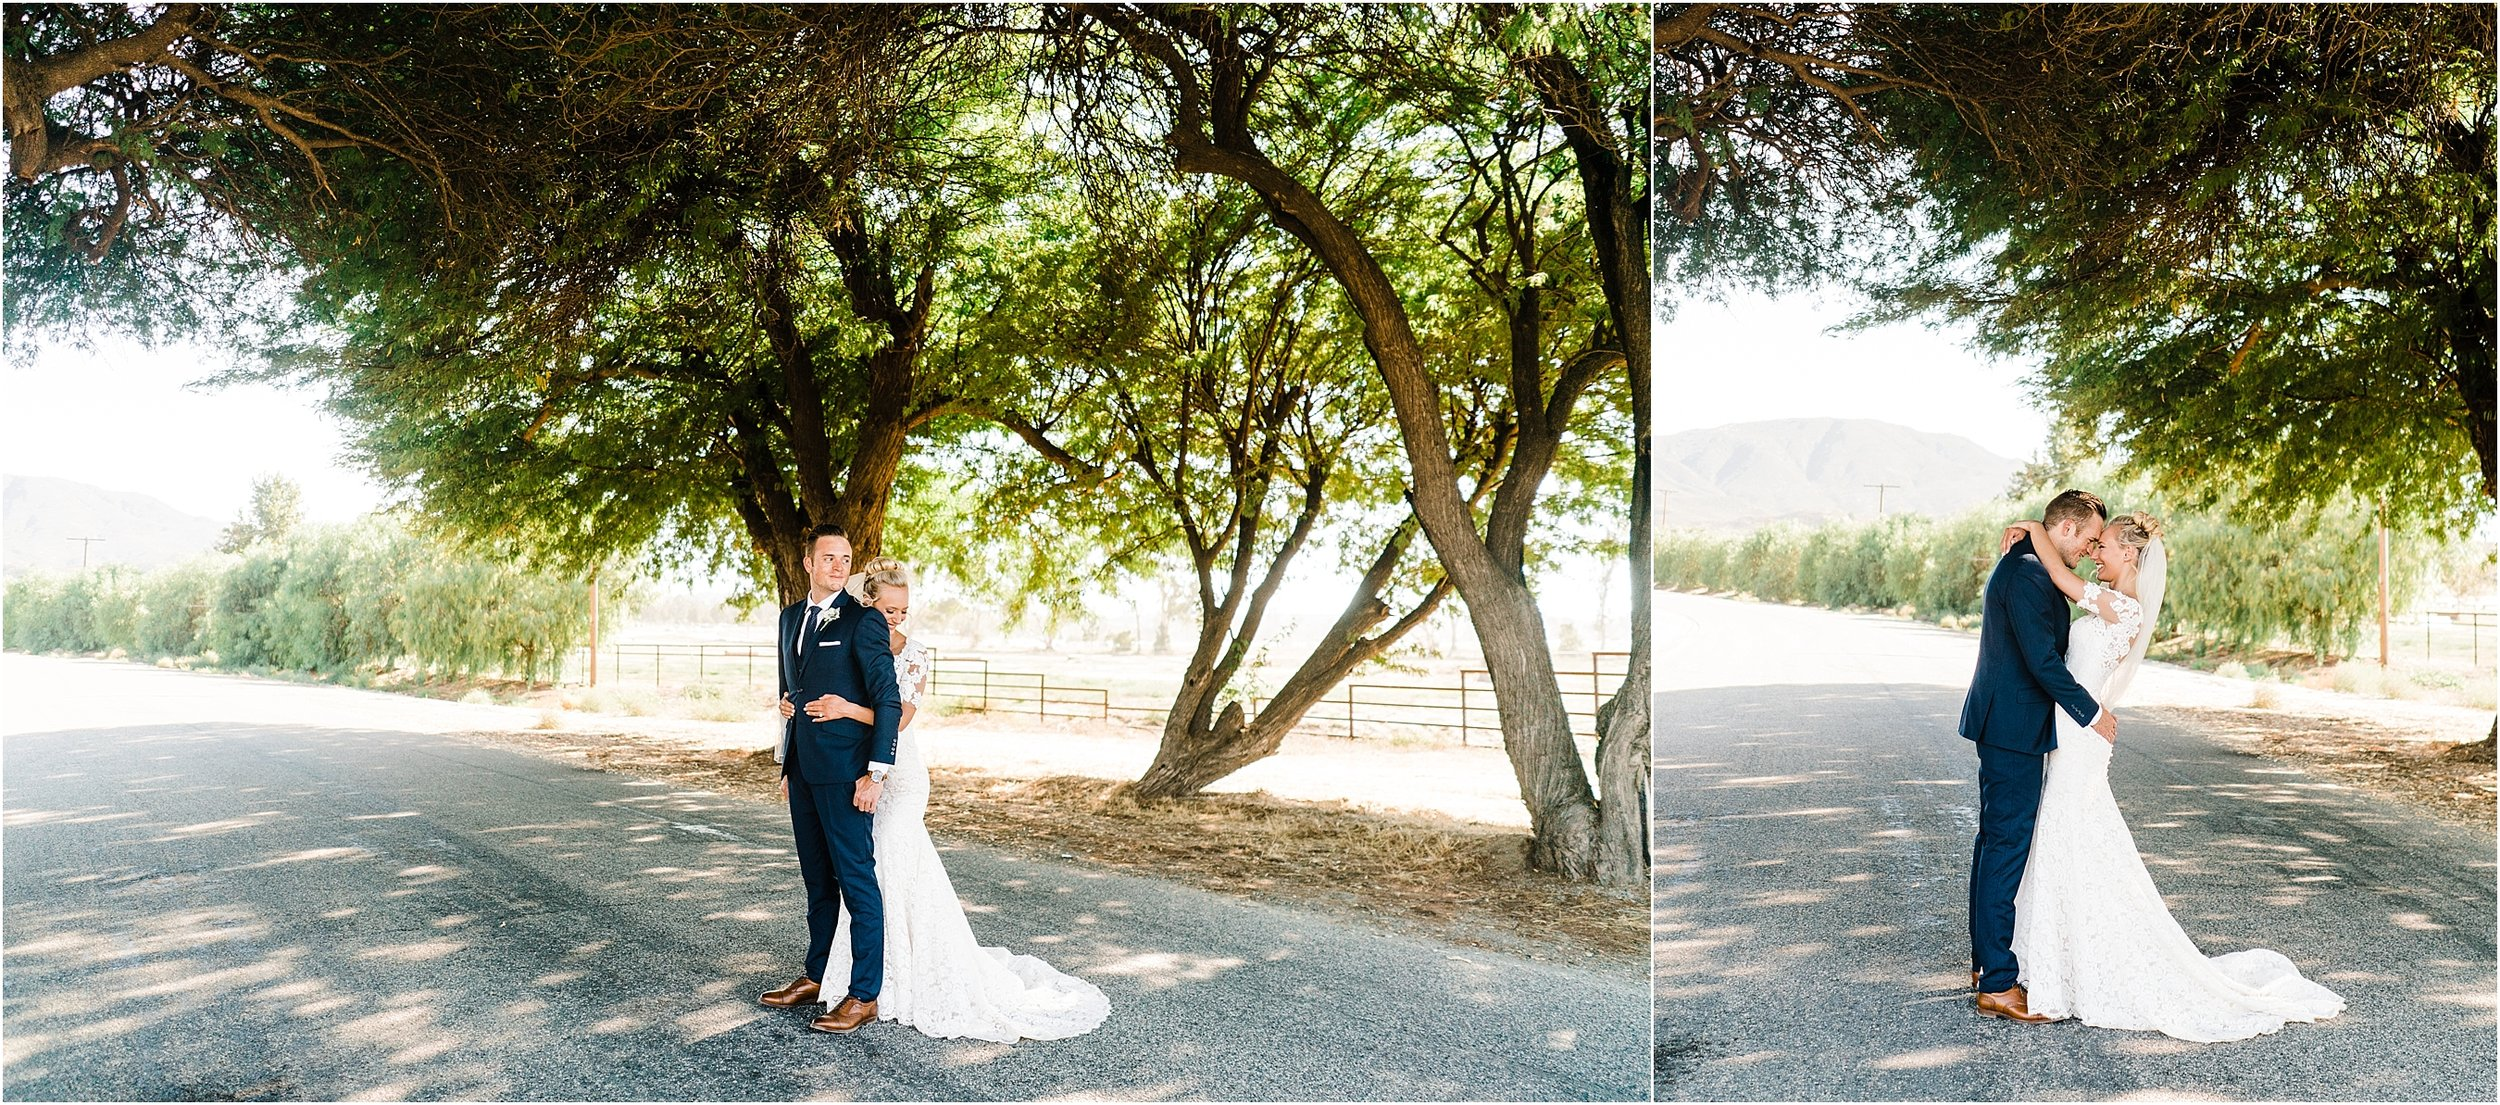 5-Reasons-To-Do-A-First-Look-Inspiration-Clarisse-Rae-Southern-California-Wedding-Photographer-4.jpg